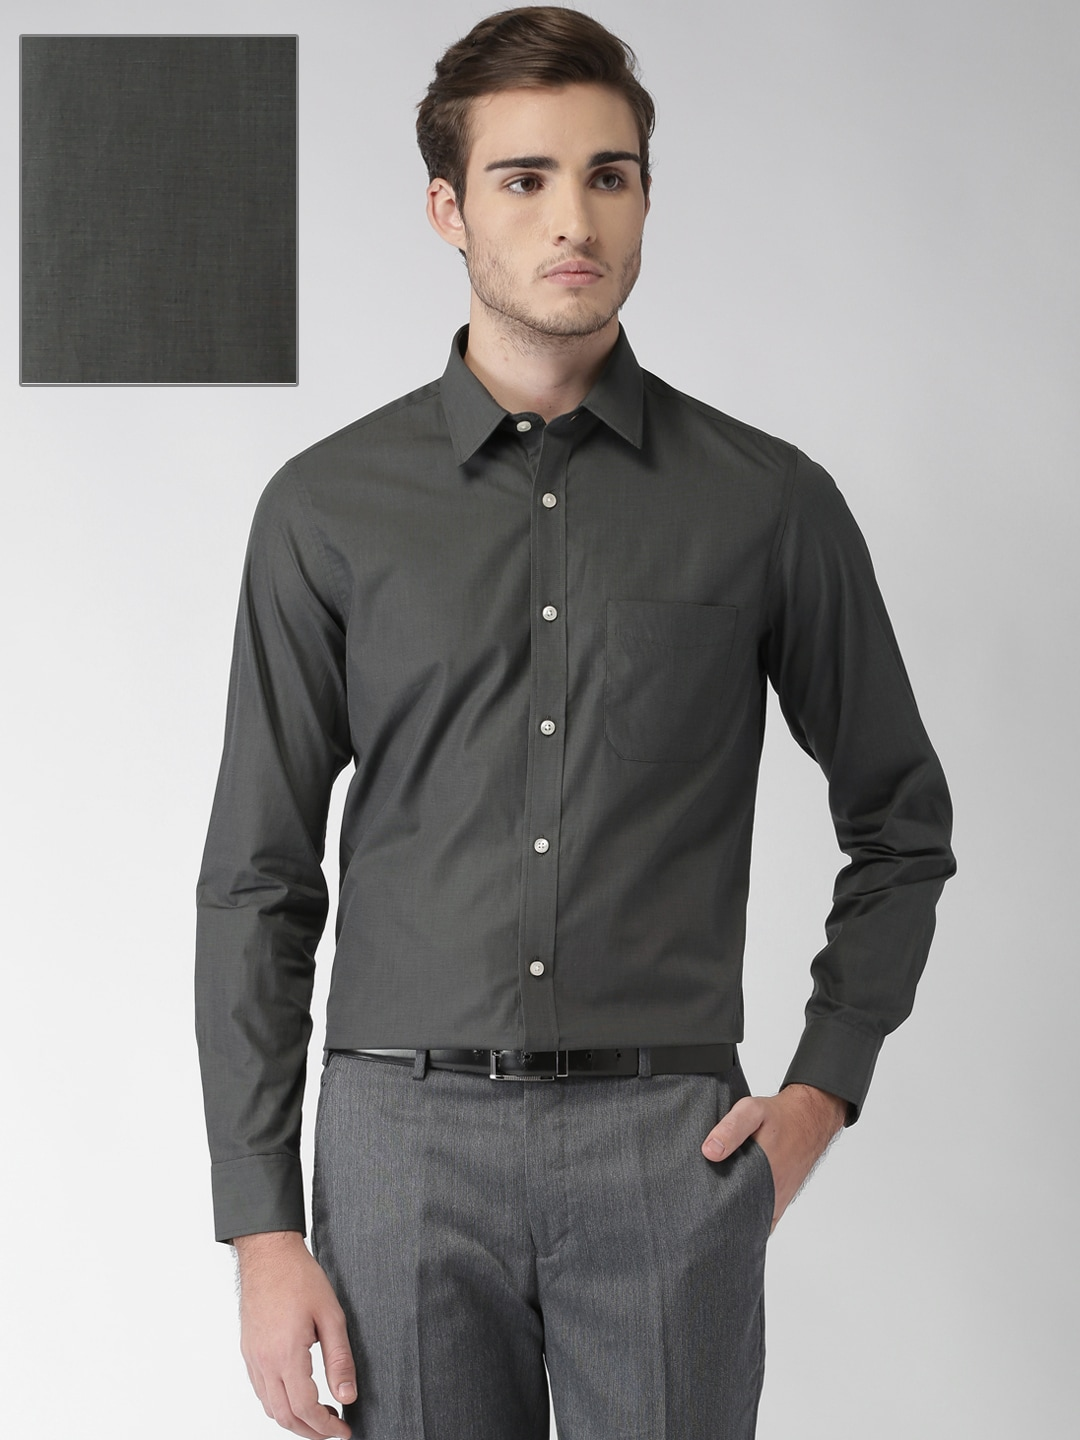 dfbea1be4fb Solid Shirts - Buy Solid Shirts Online in India